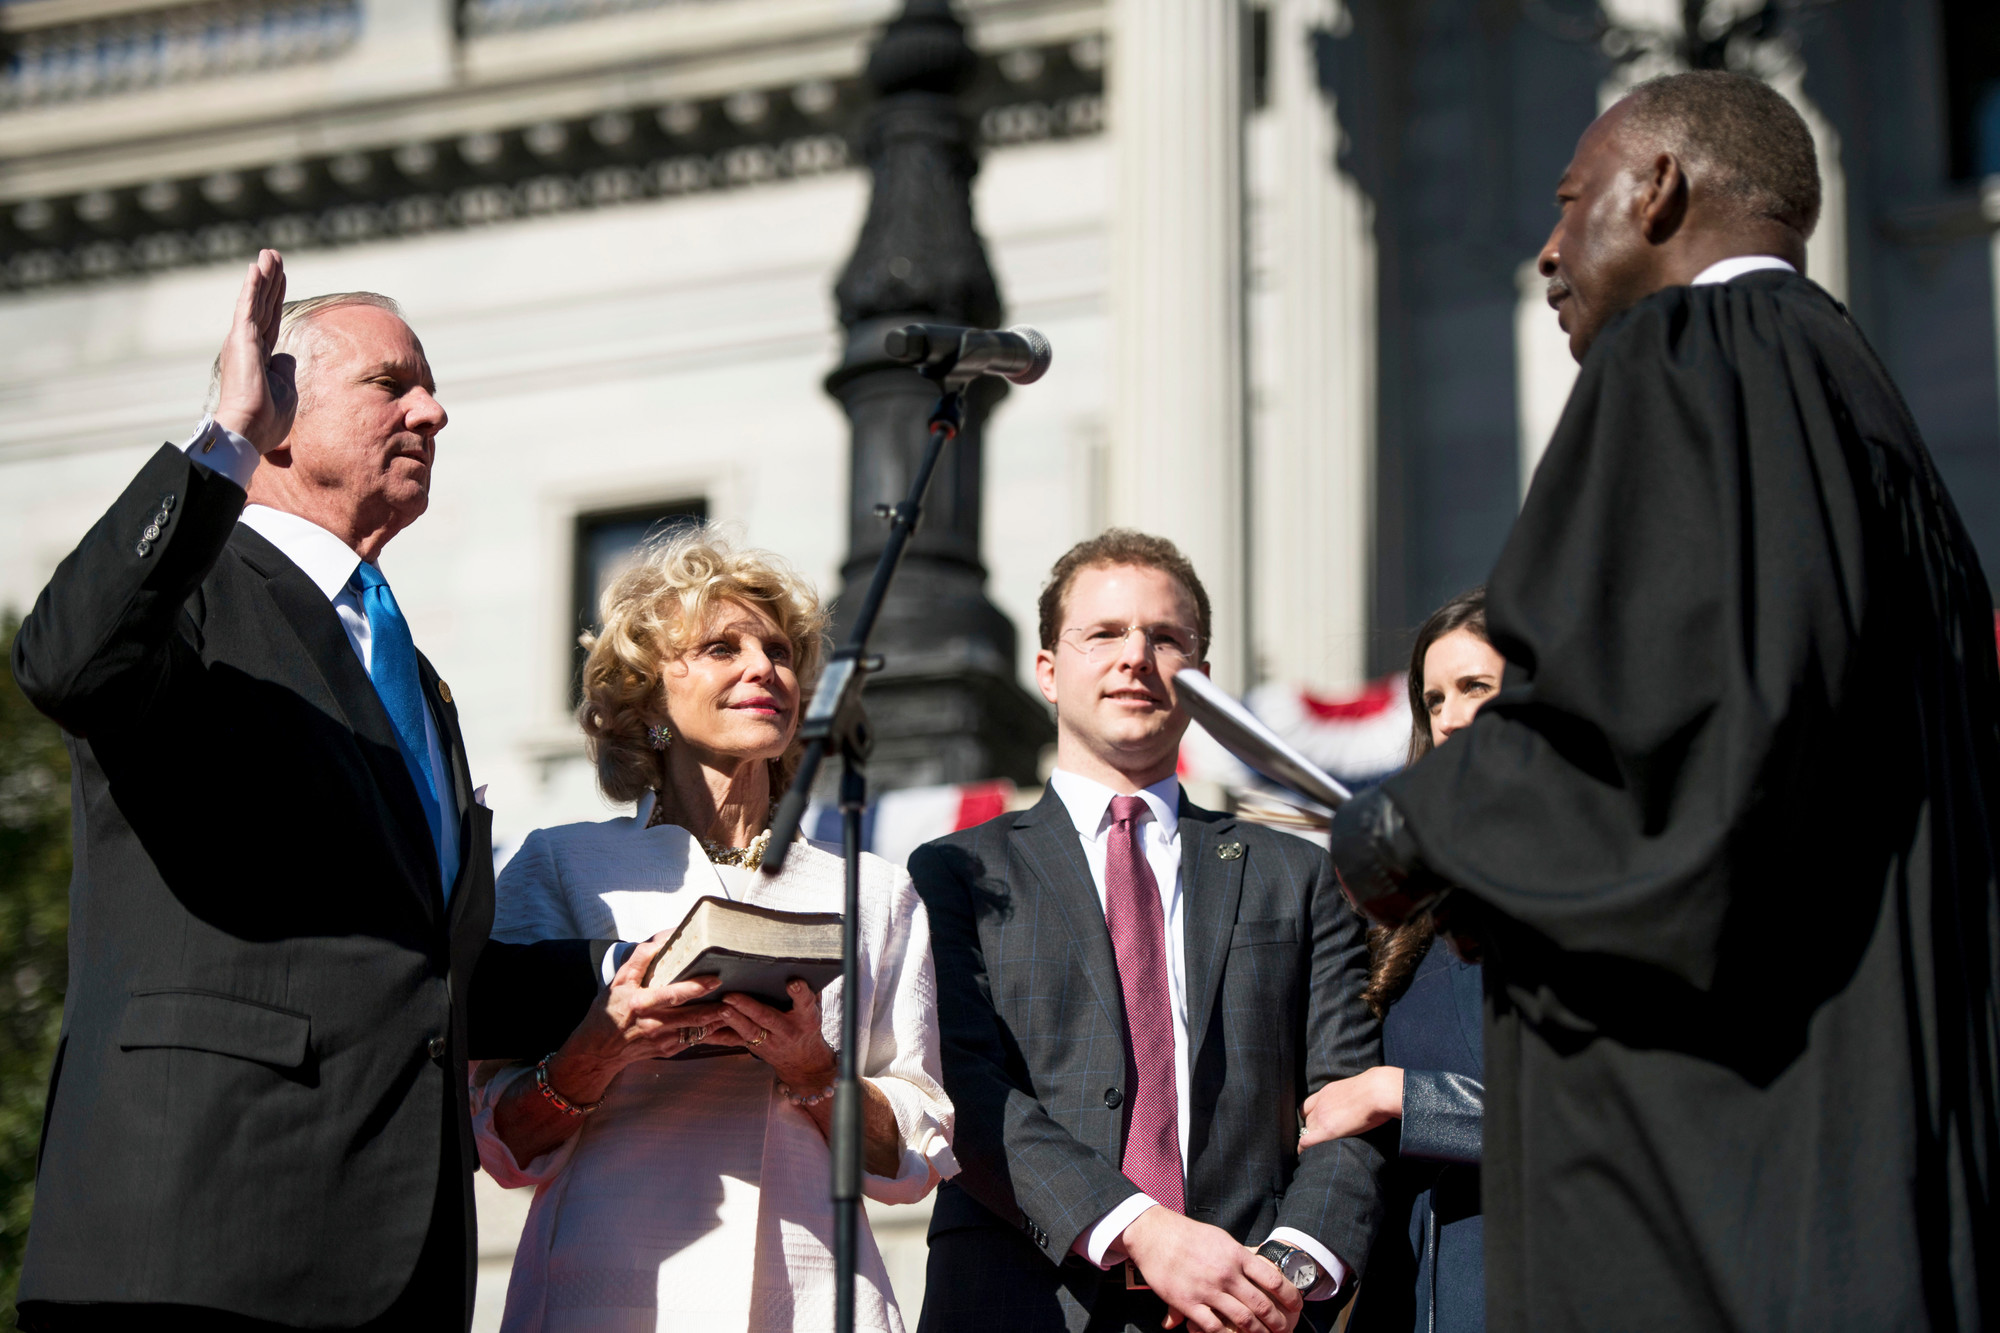 South Carolina Gov. Henry McMaster, left, takes the Oath of Office with Chief Justice Donald Beatty, right, outside the South Carolina Statehouse on Wednesday.  McMaster was joined by family including Peggy McMaster, second from left, and son Henry McMaster Jr.